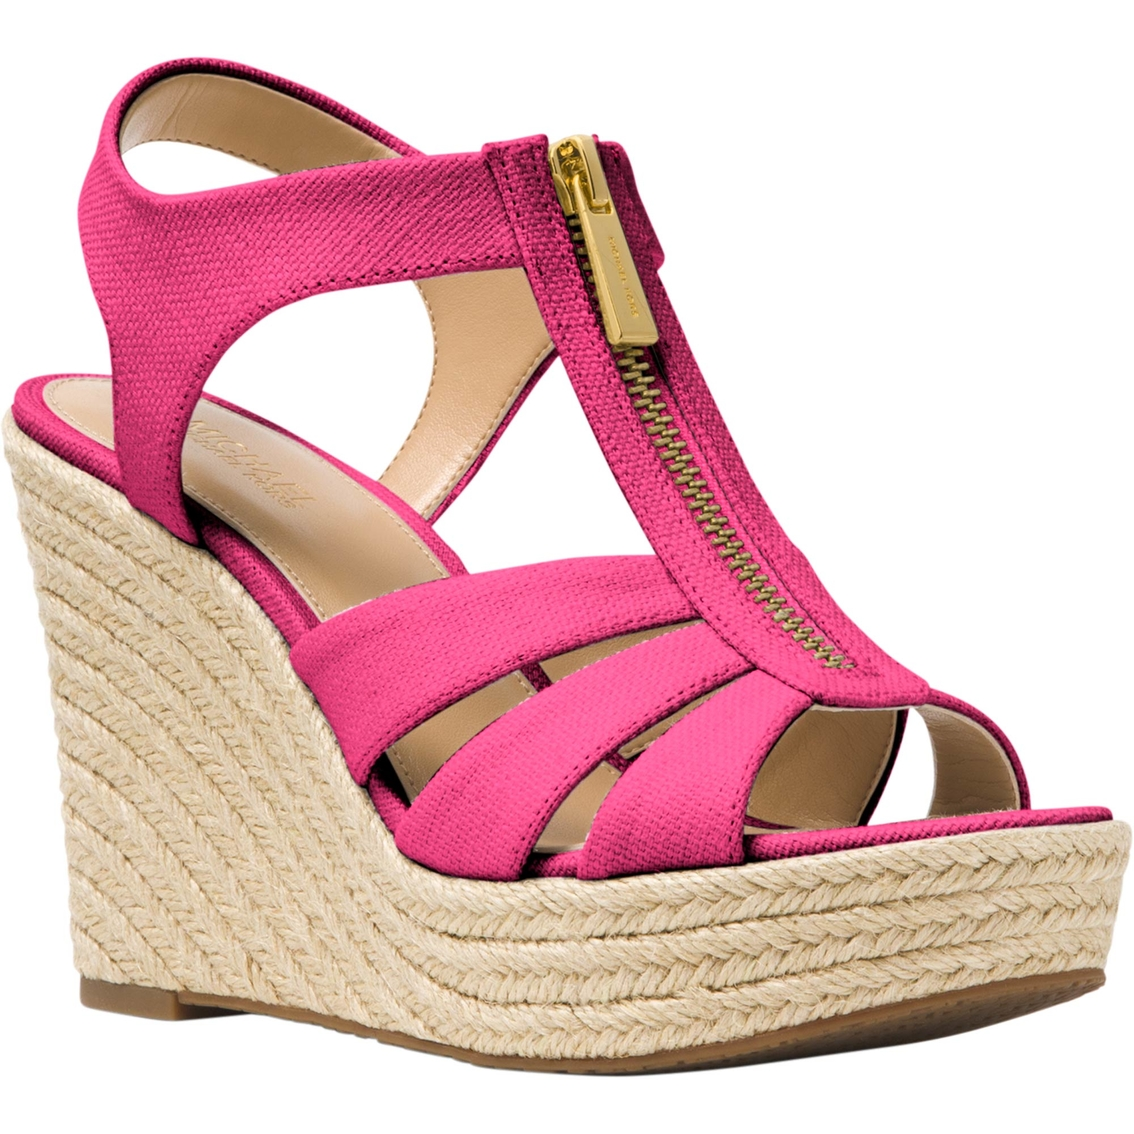 d07bf27f4f5 Michael Kors Zipper Weave Canvas Berkley Wedges